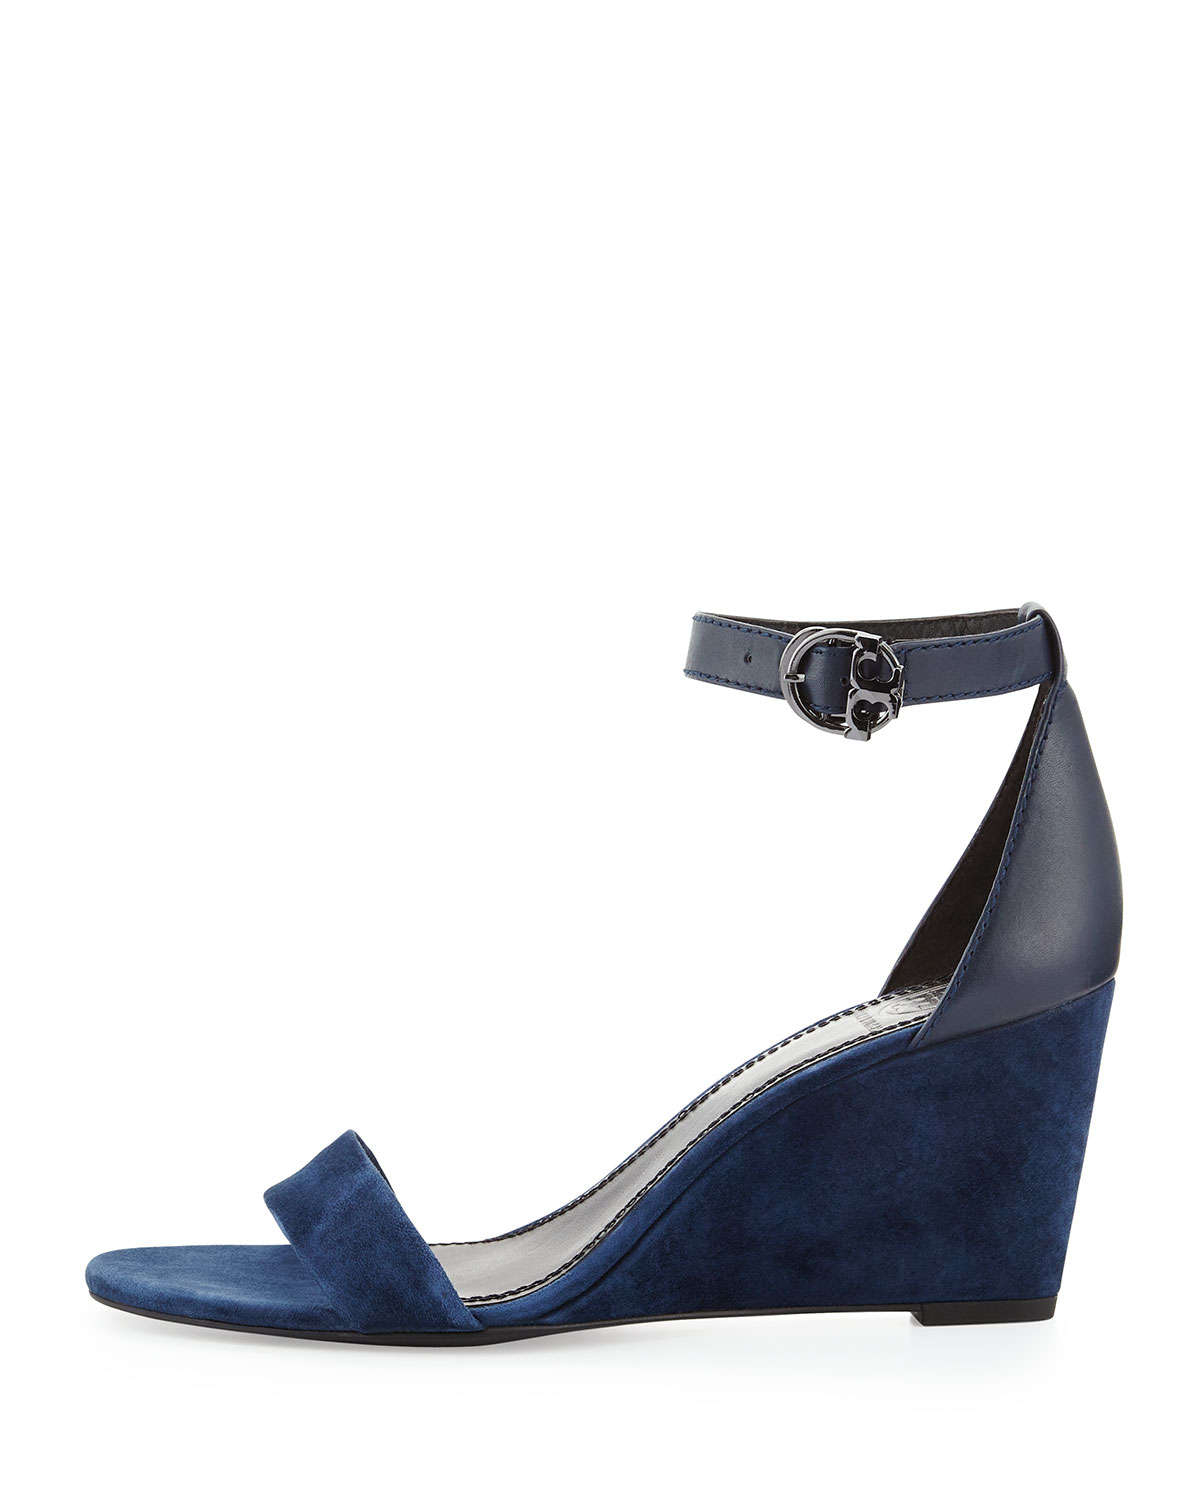 c26aa588c604f Lyst - Tory Burch Thames Suede Wedge Sandal in Blue